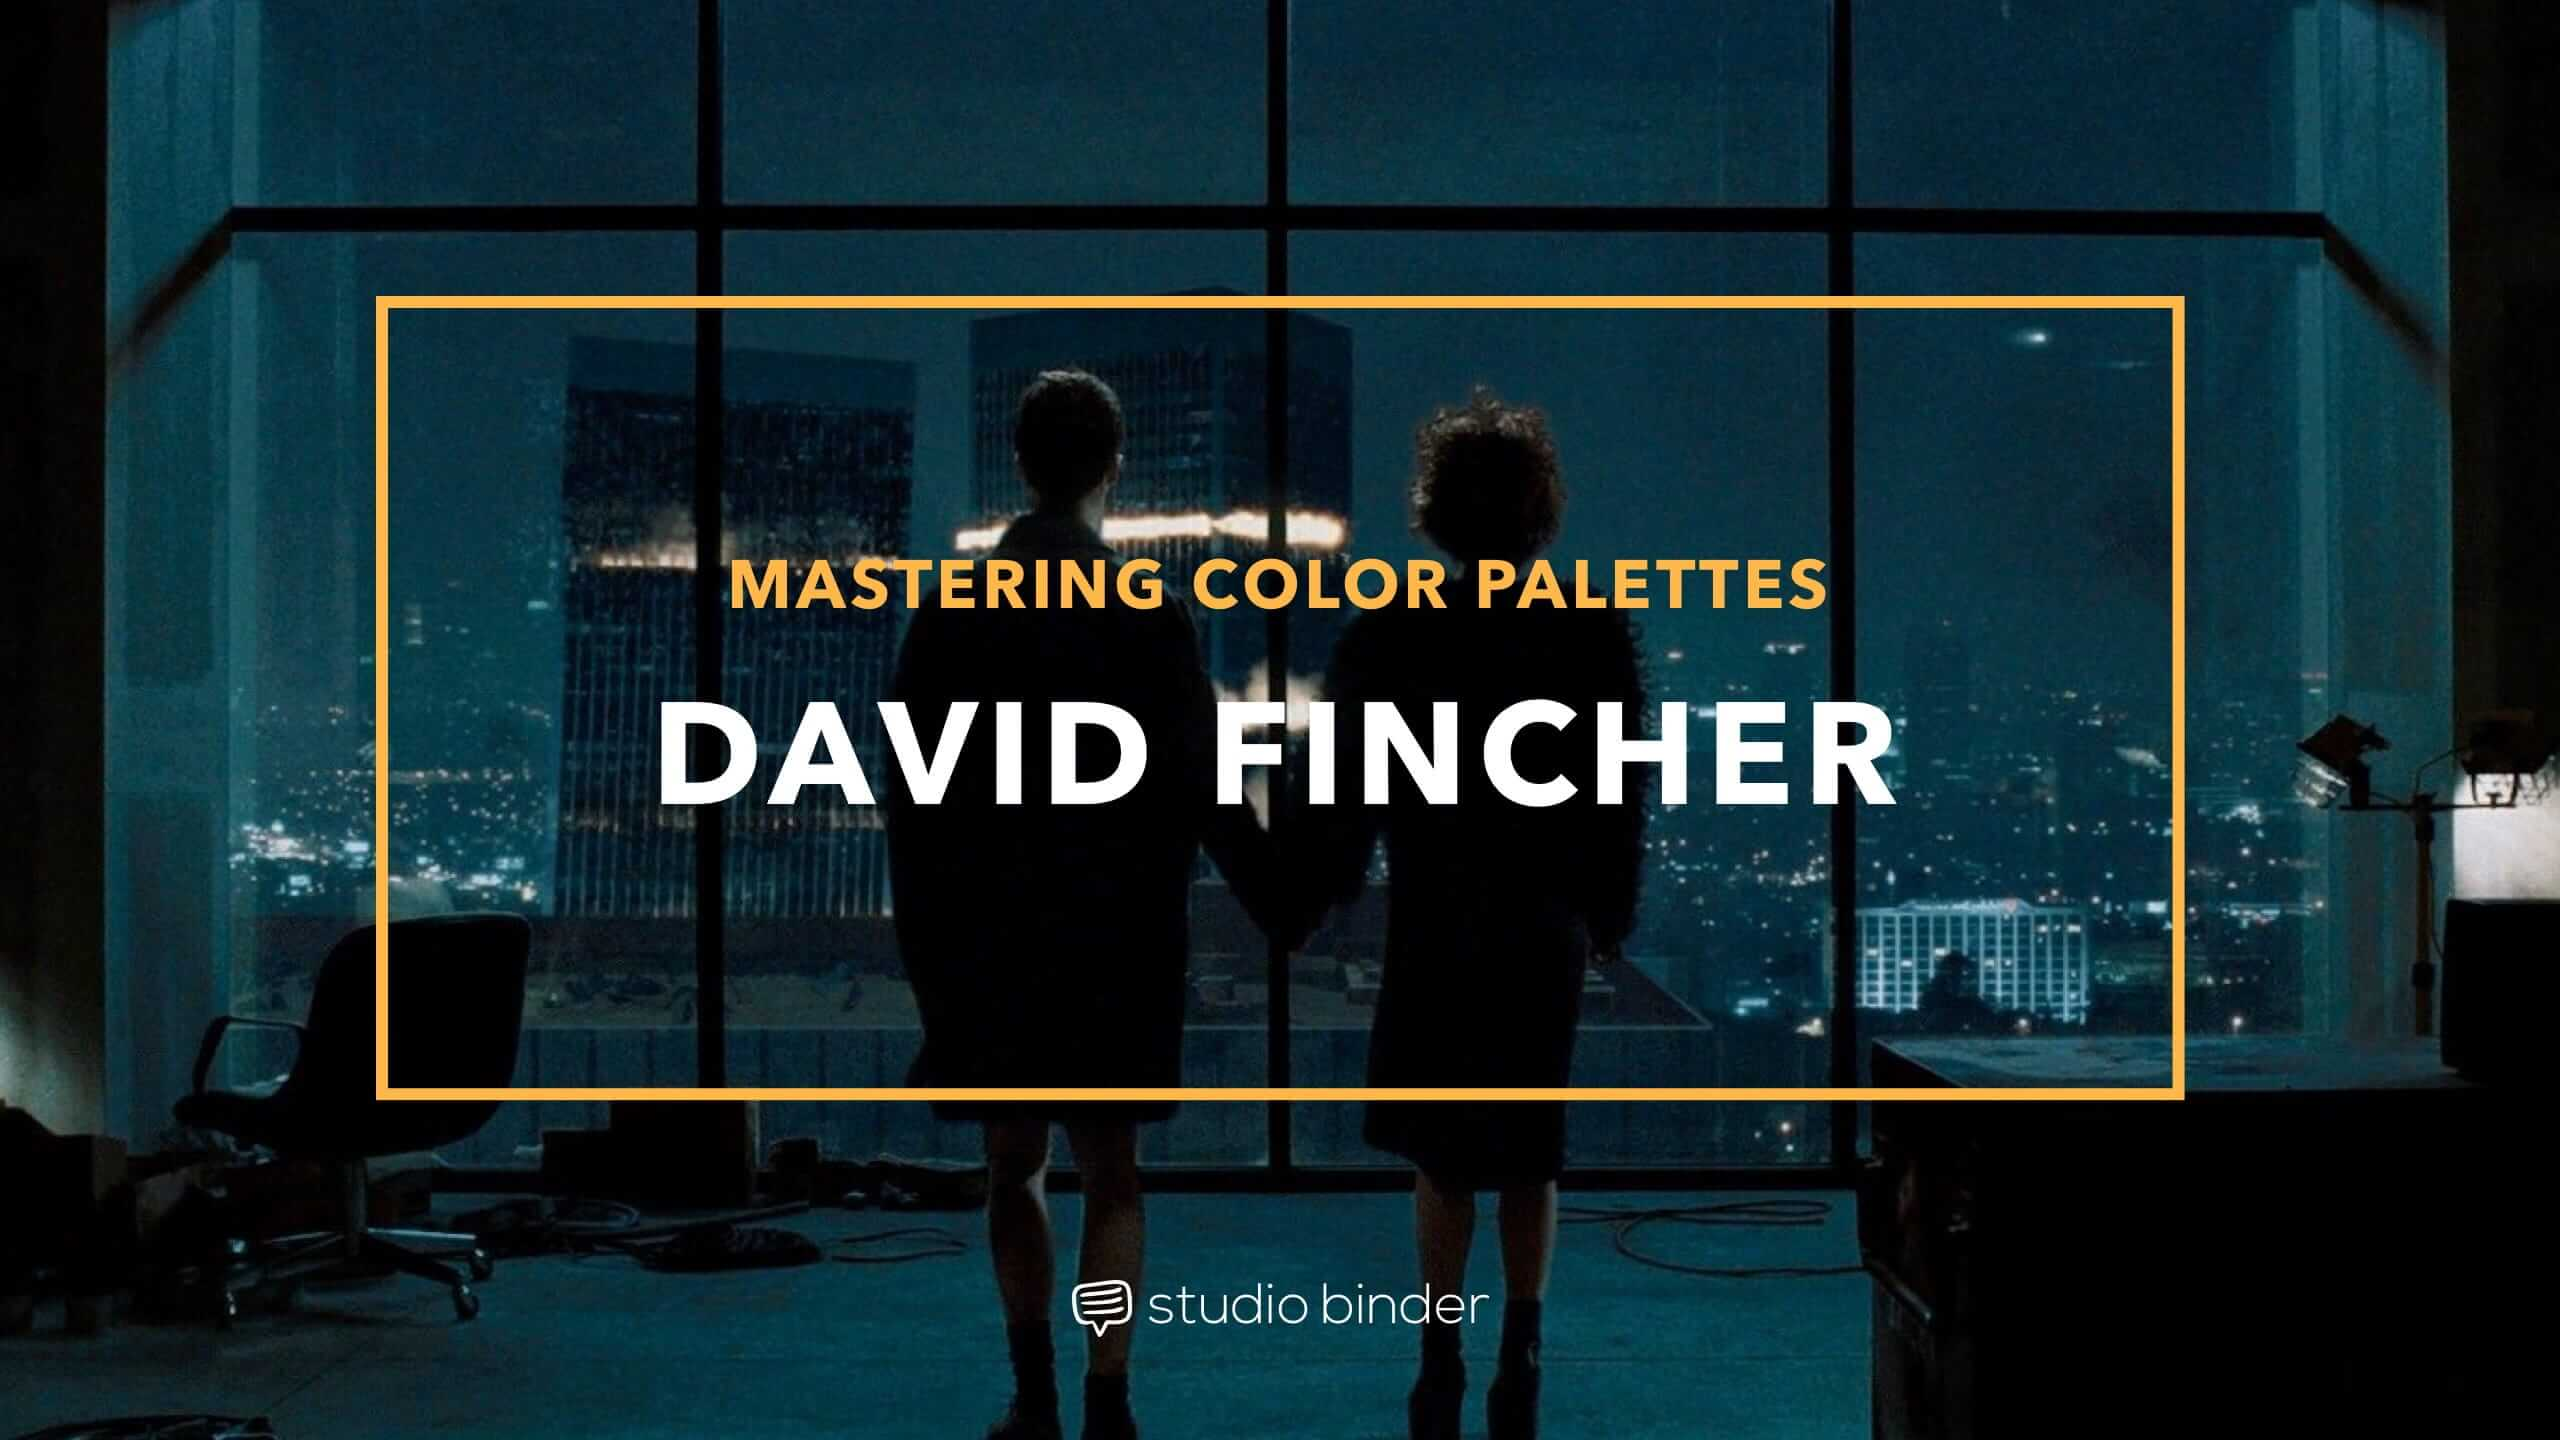 David Fincher is known for strong visuals, and much of this has to do with color choice. Here's how to create a movie color palette like him.